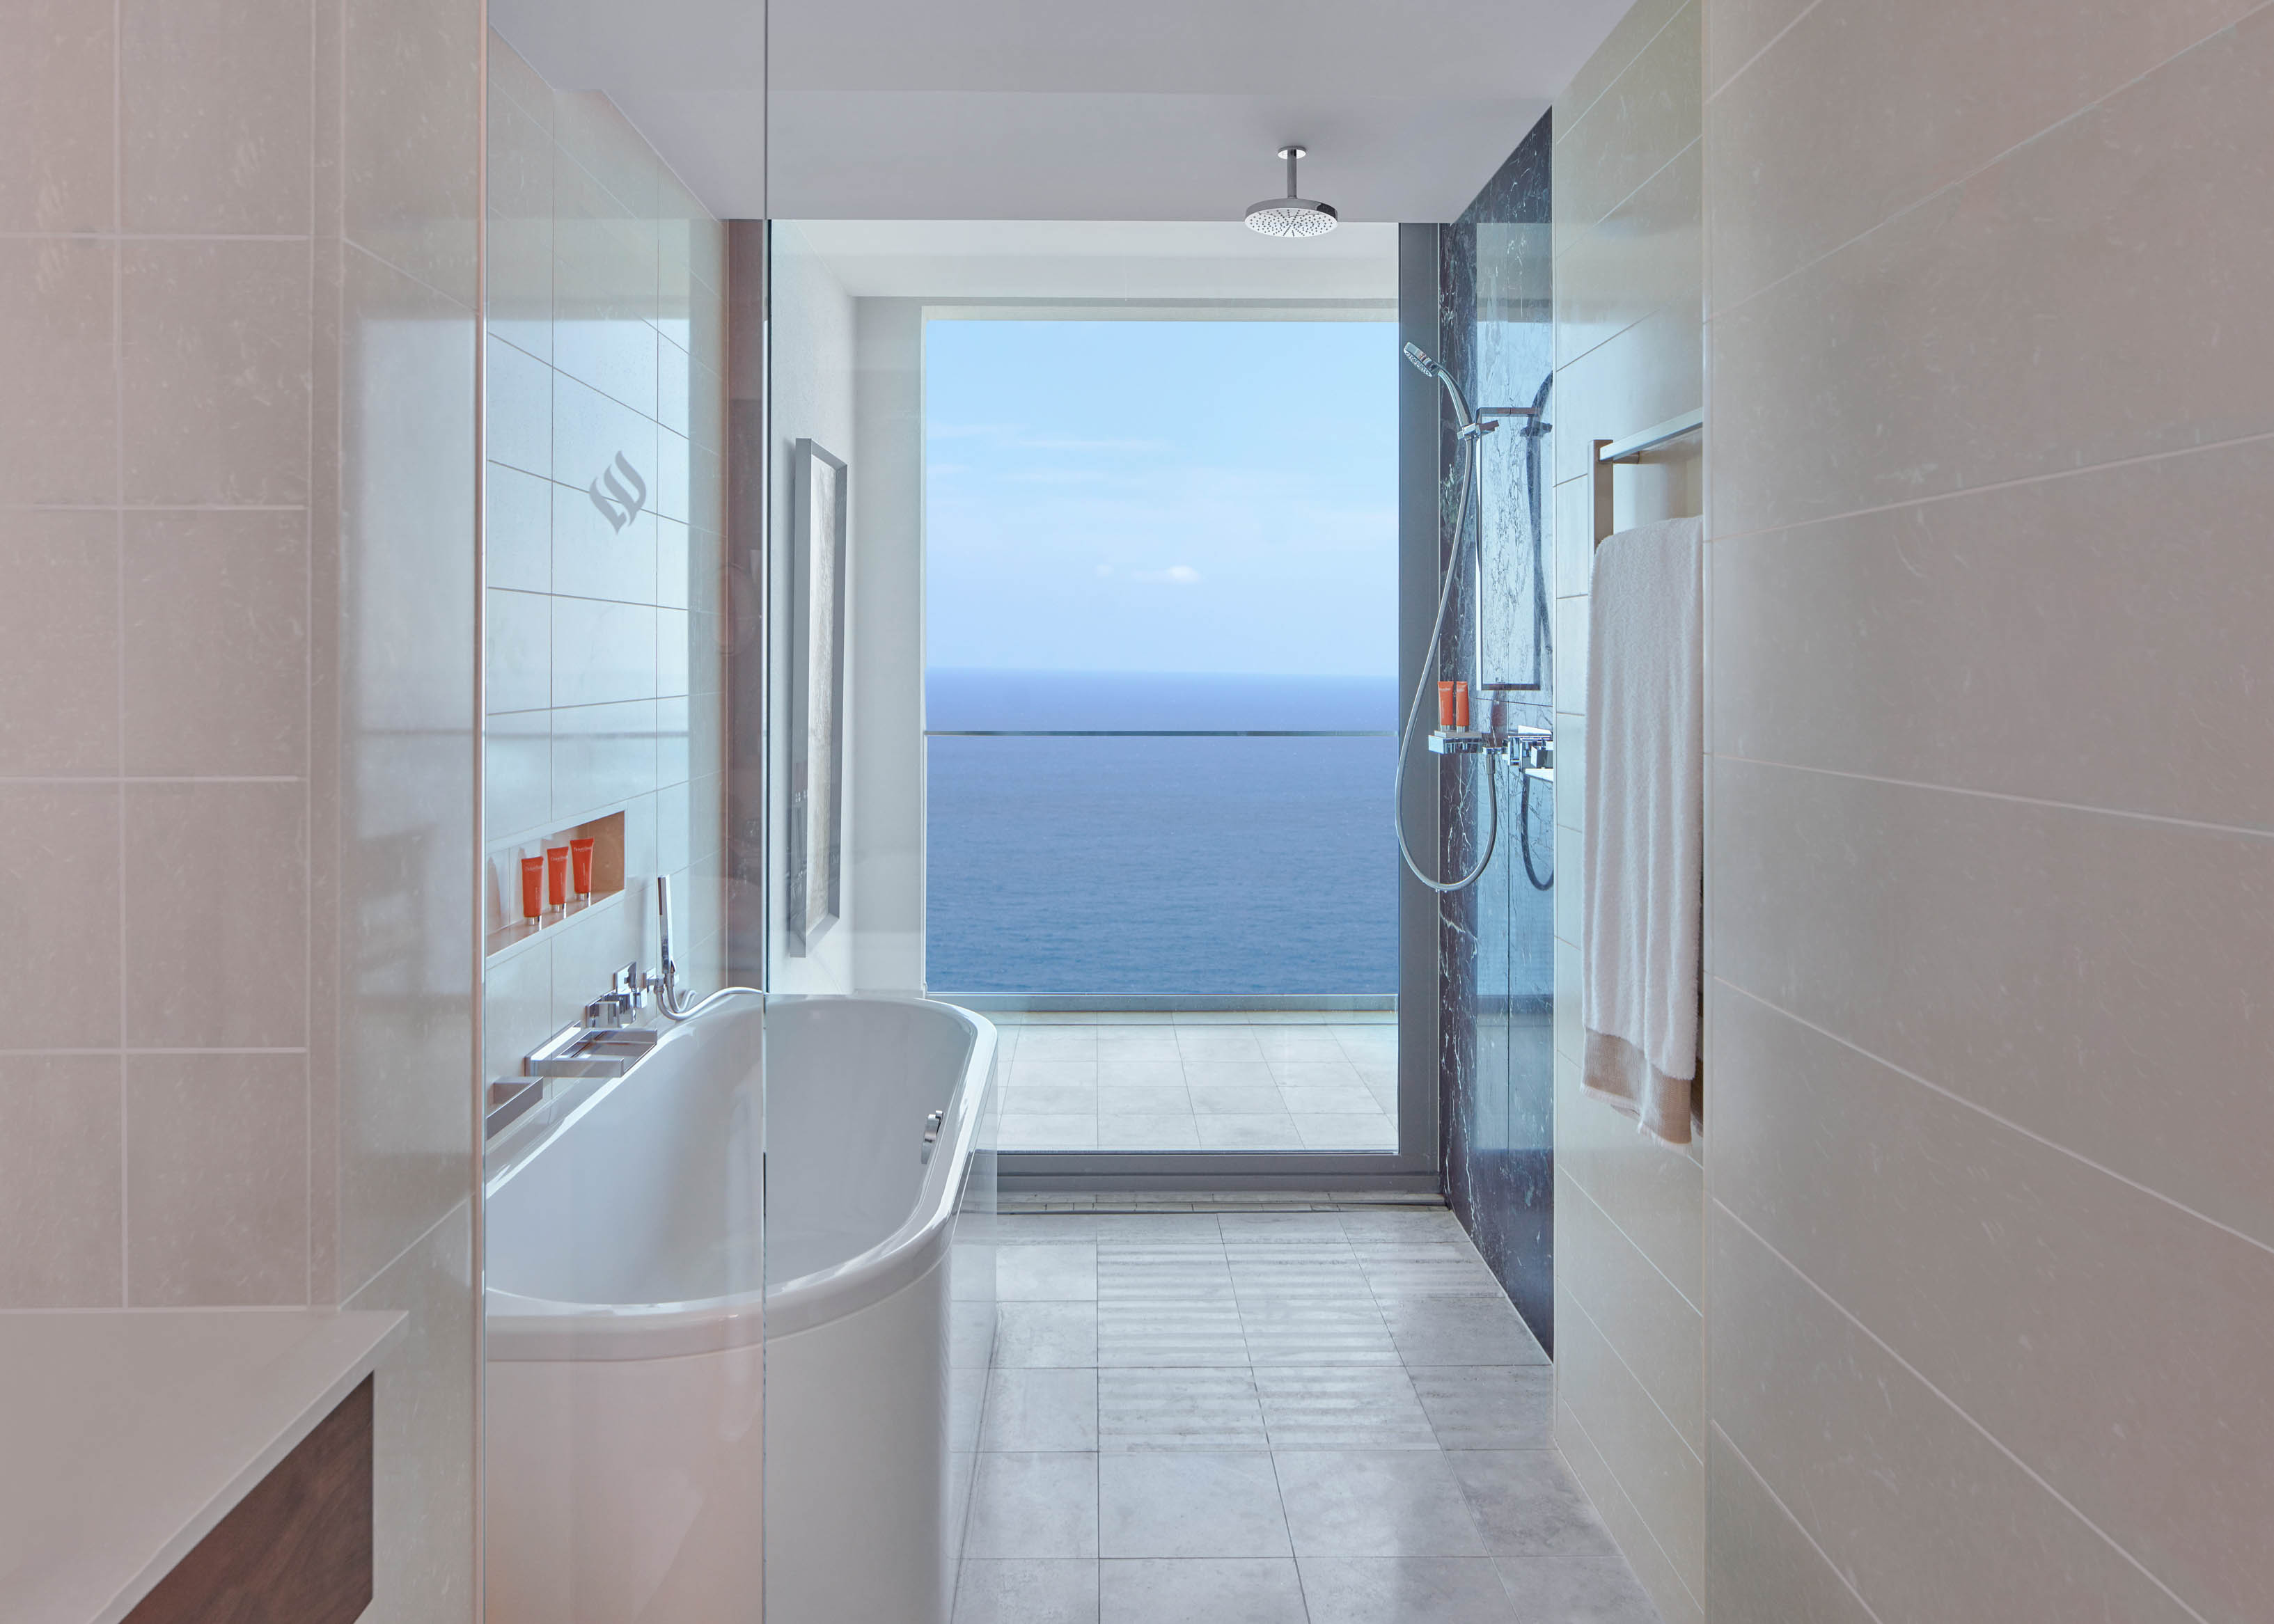 Deluxe Sea View  bathroom view